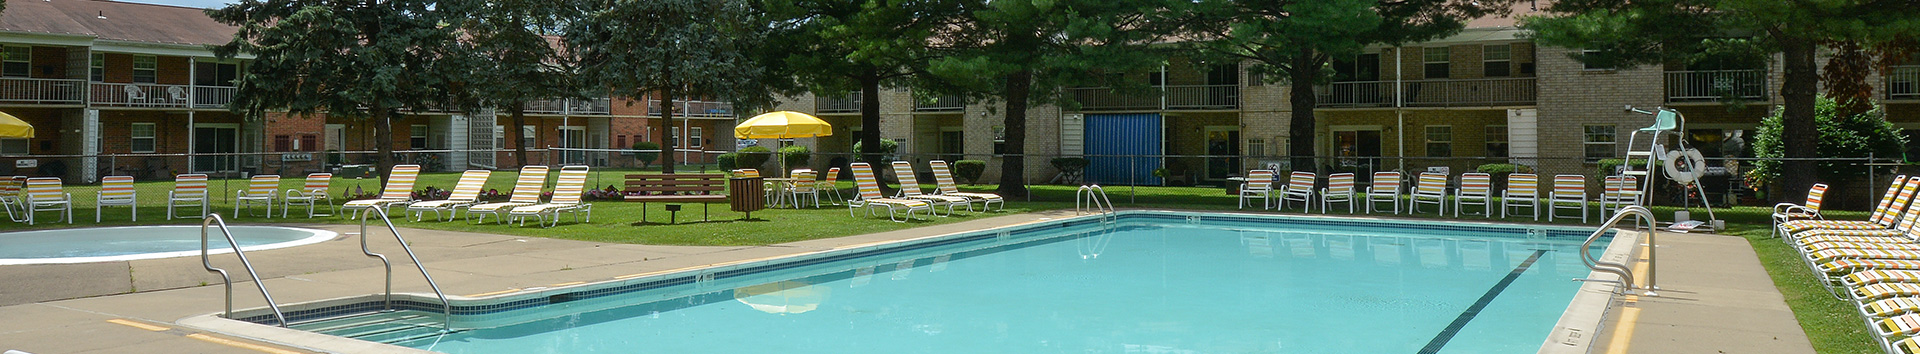 Swimming Pool of Gateway Apatments at Manor Communities, Wilkes-Barre/Pennsylvania